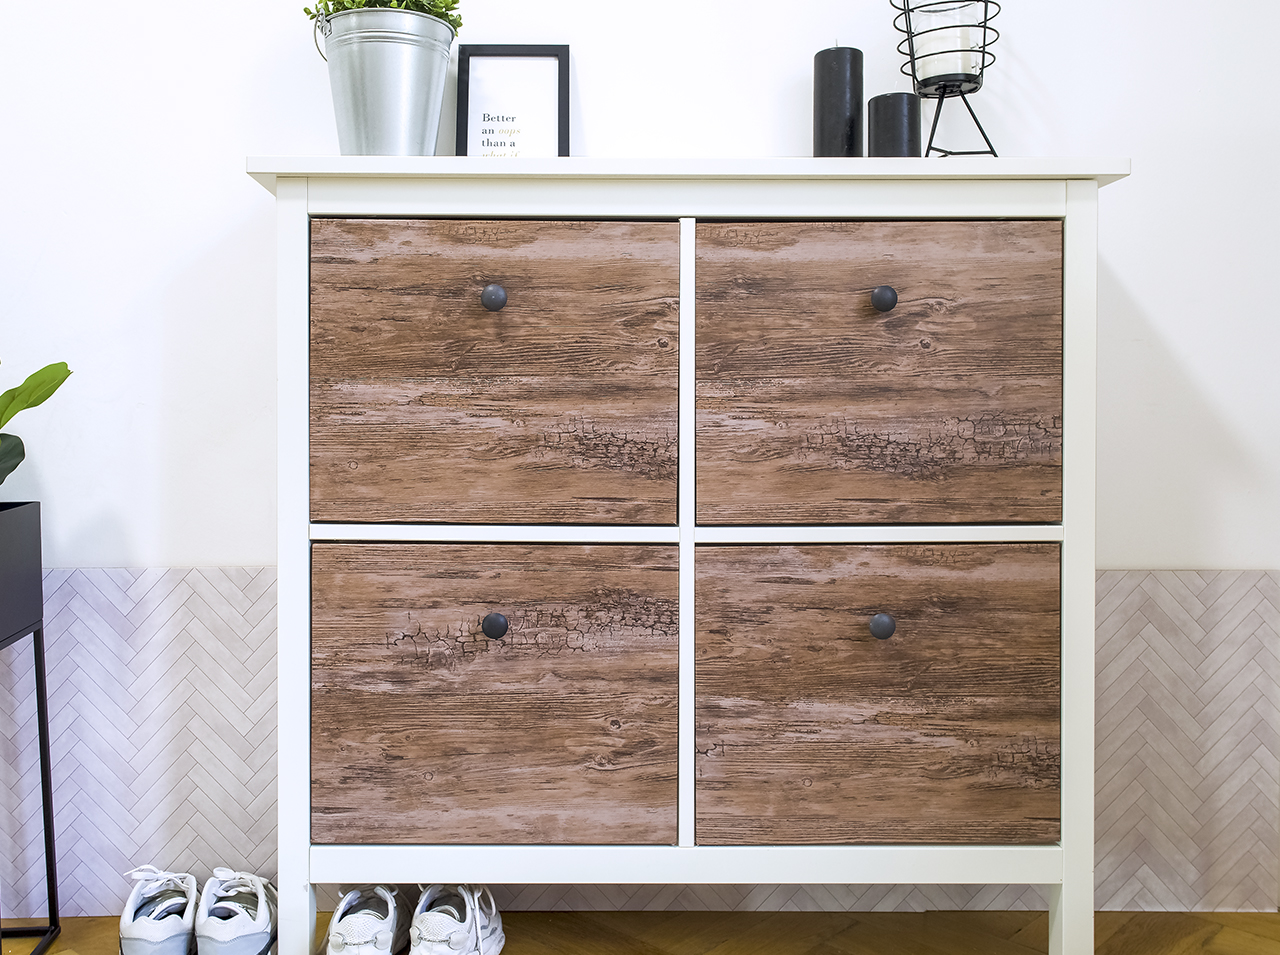 DIY upcycling of a shoe rack newly covered and designed with the d-c-fix® Rustic Wood adhesive foil in Scandi look.